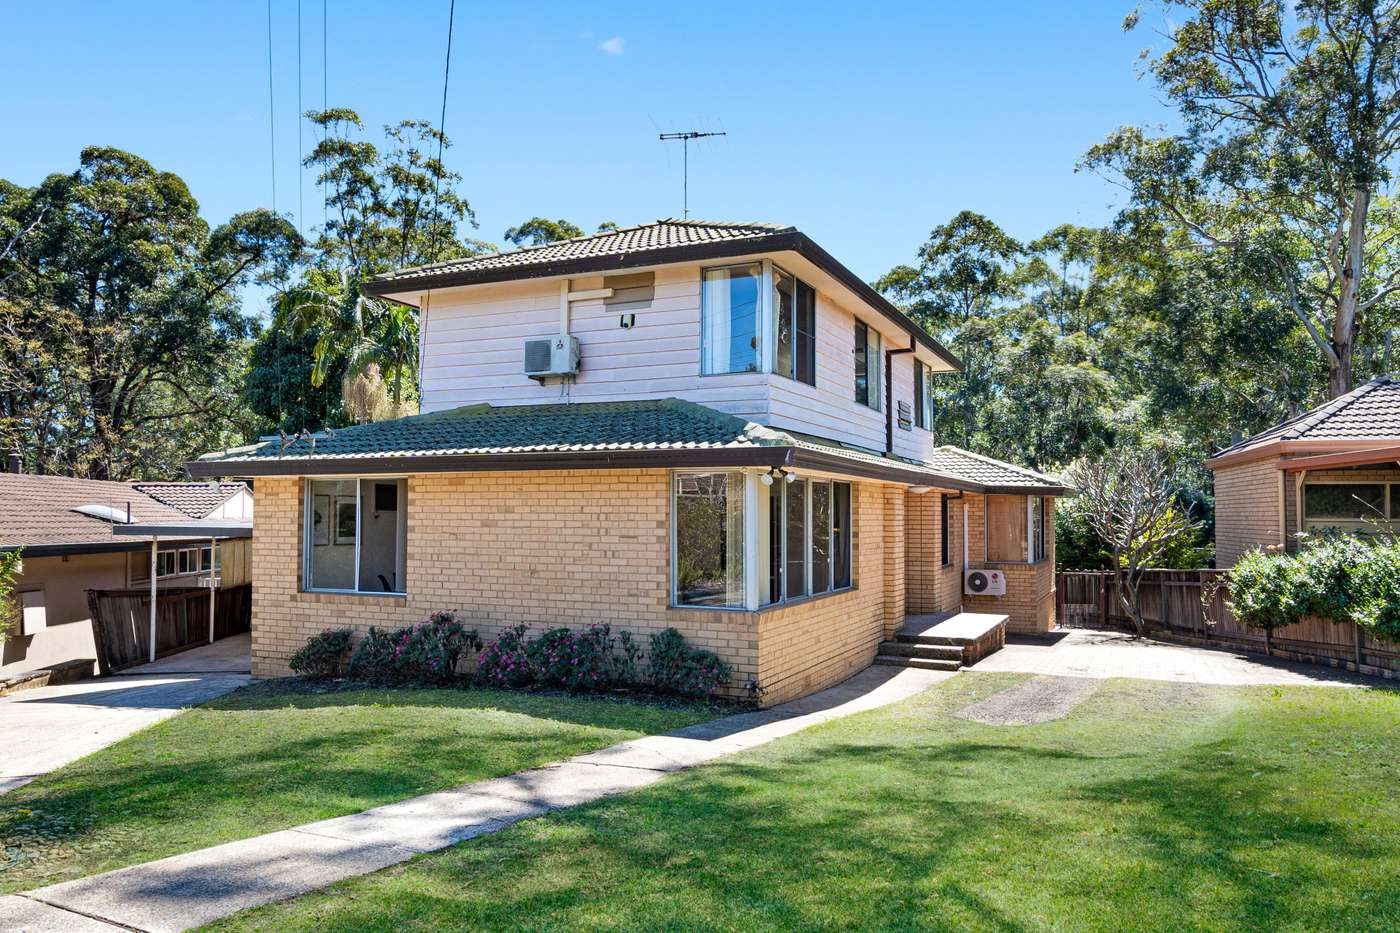 Main view of Homely house listing, 21 Karen Court, Baulkham Hills, NSW 2153